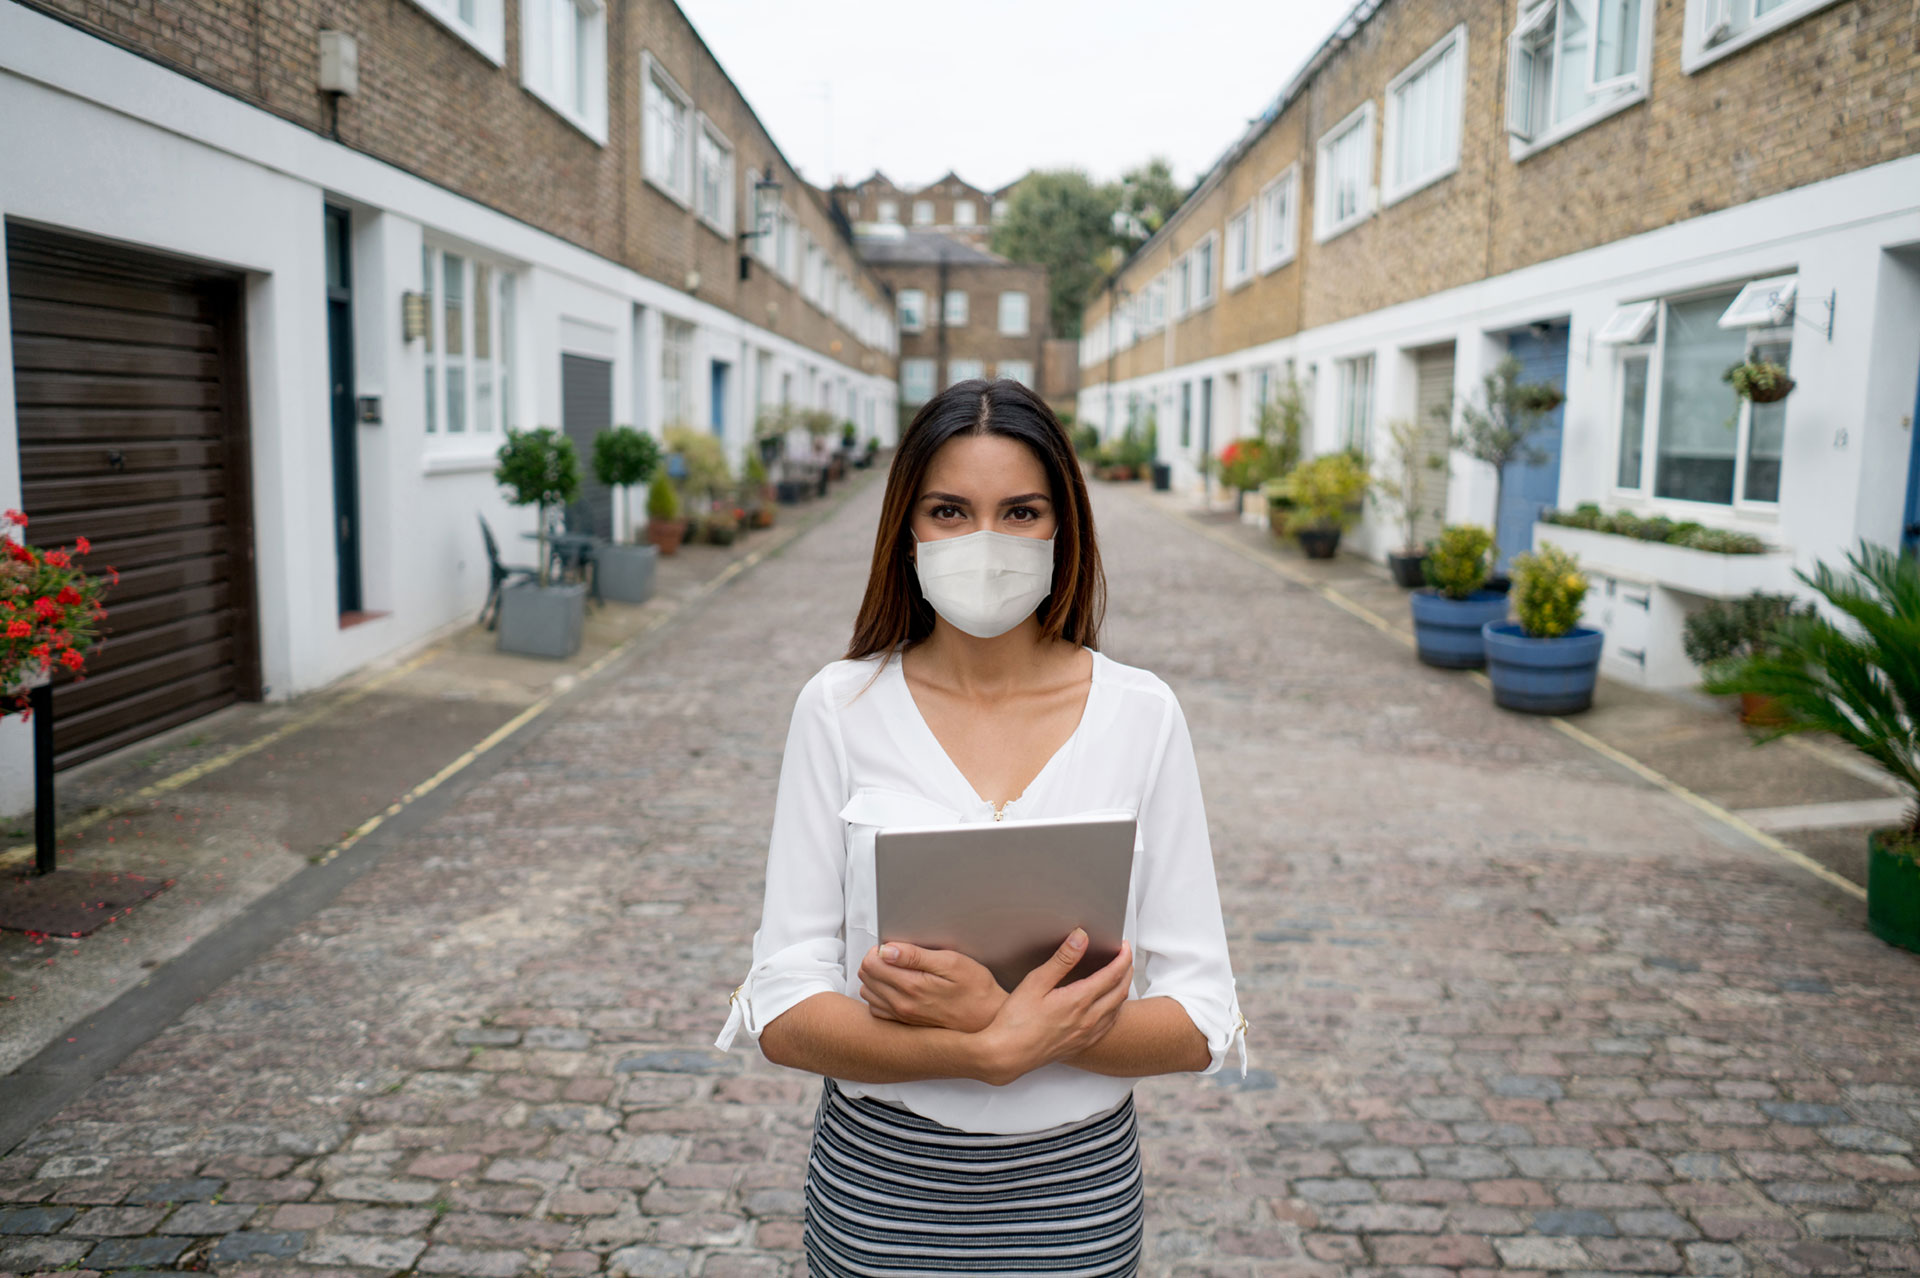 Demand for buying agents is on the rise despite the pandemic